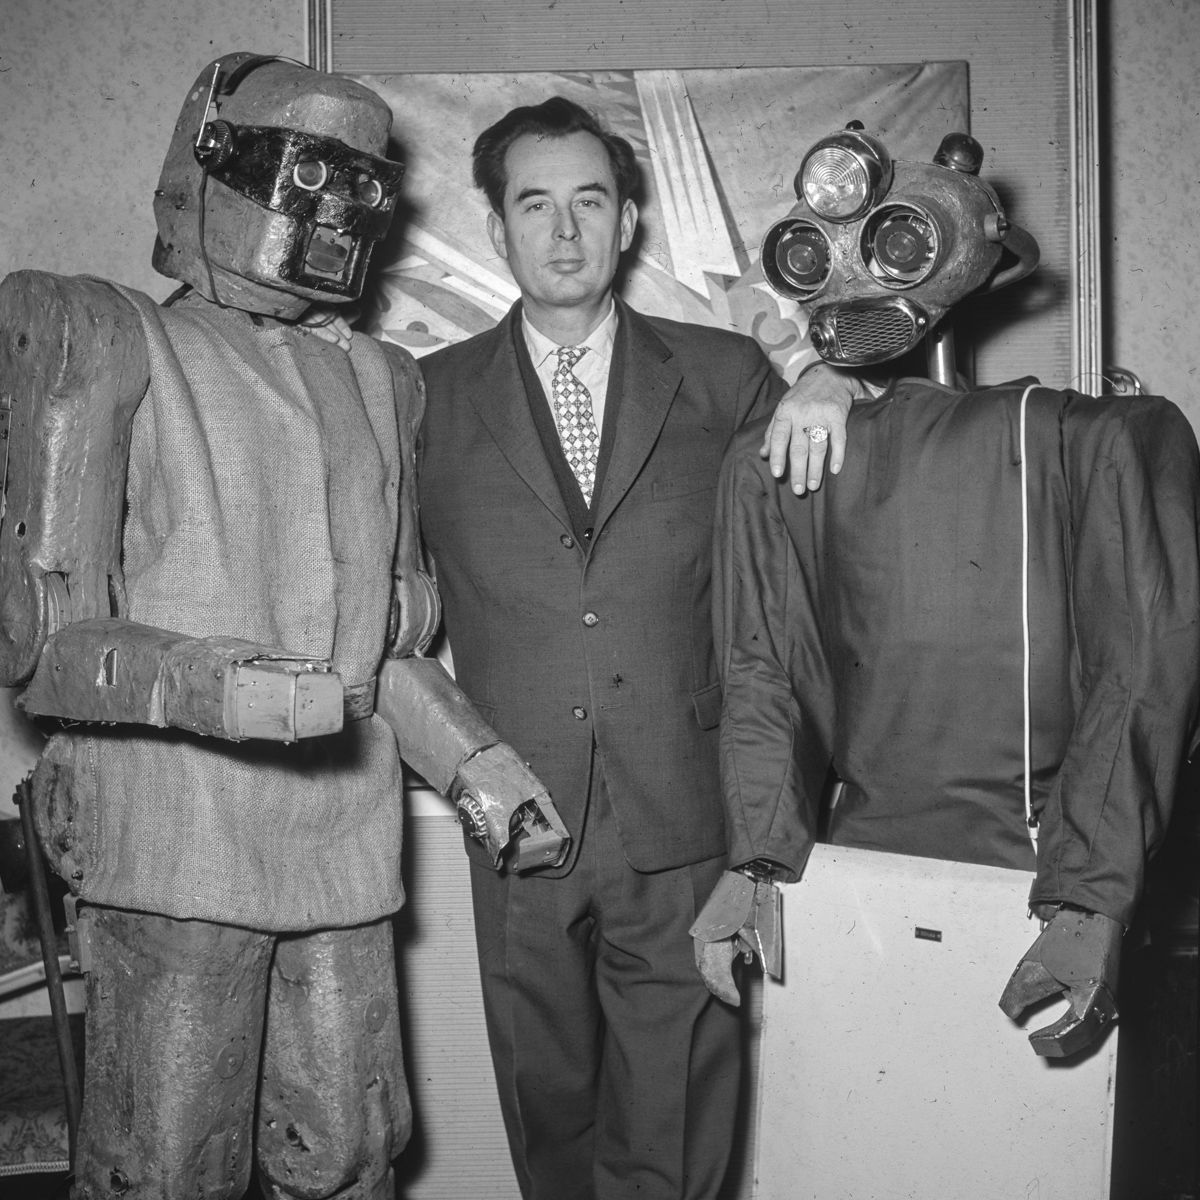 1964: Austrian inventor Claus Scholz stands with his robots MM7 and MM8. Operated via remote control they could open doors vacuum floors and pour tea. #futureofthepast https://t.co/zTOnXw76PE